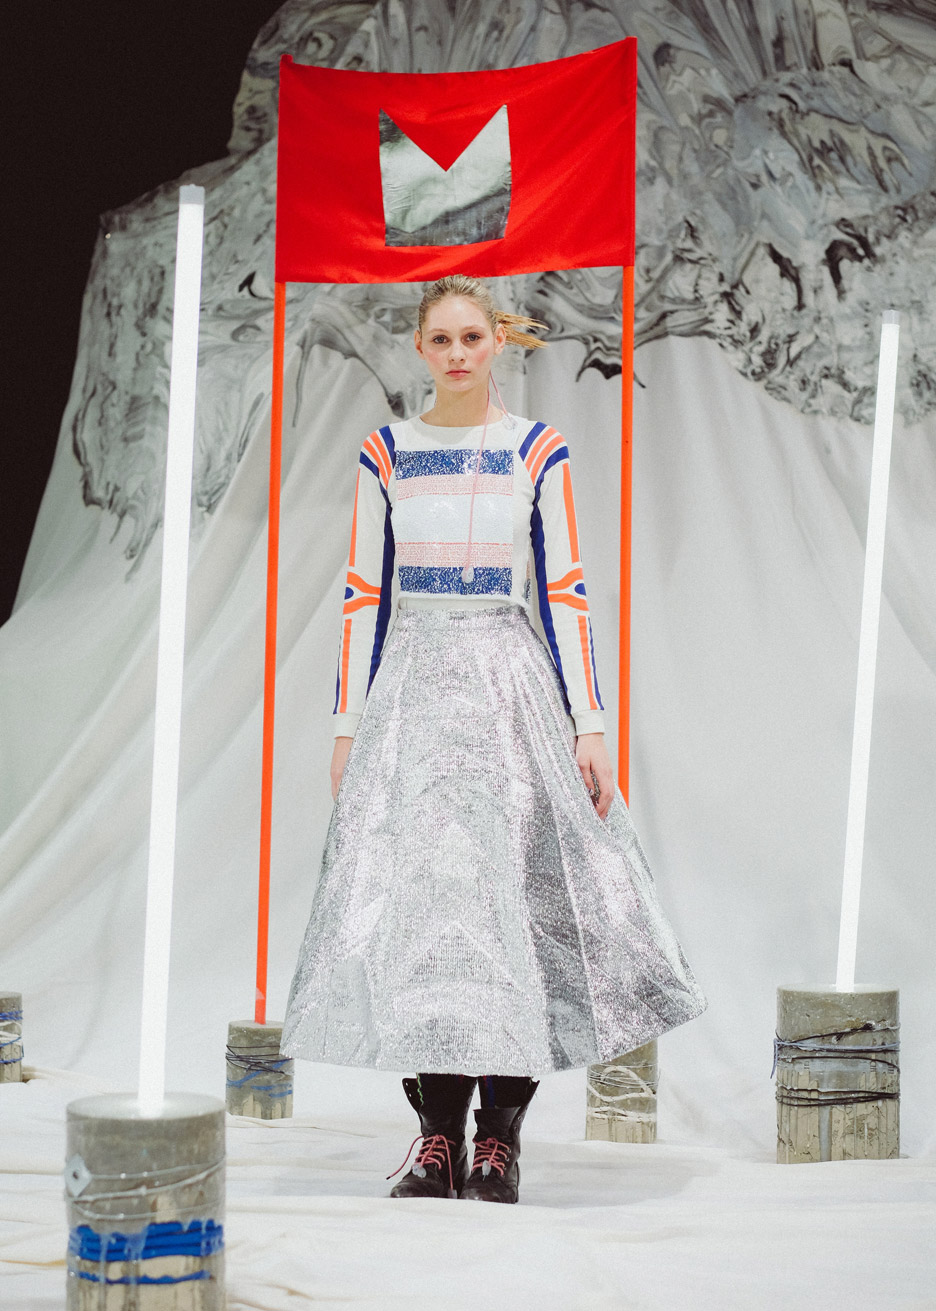 916af65cba2 Sadie Williams gives retro ski wear a futuristic twist